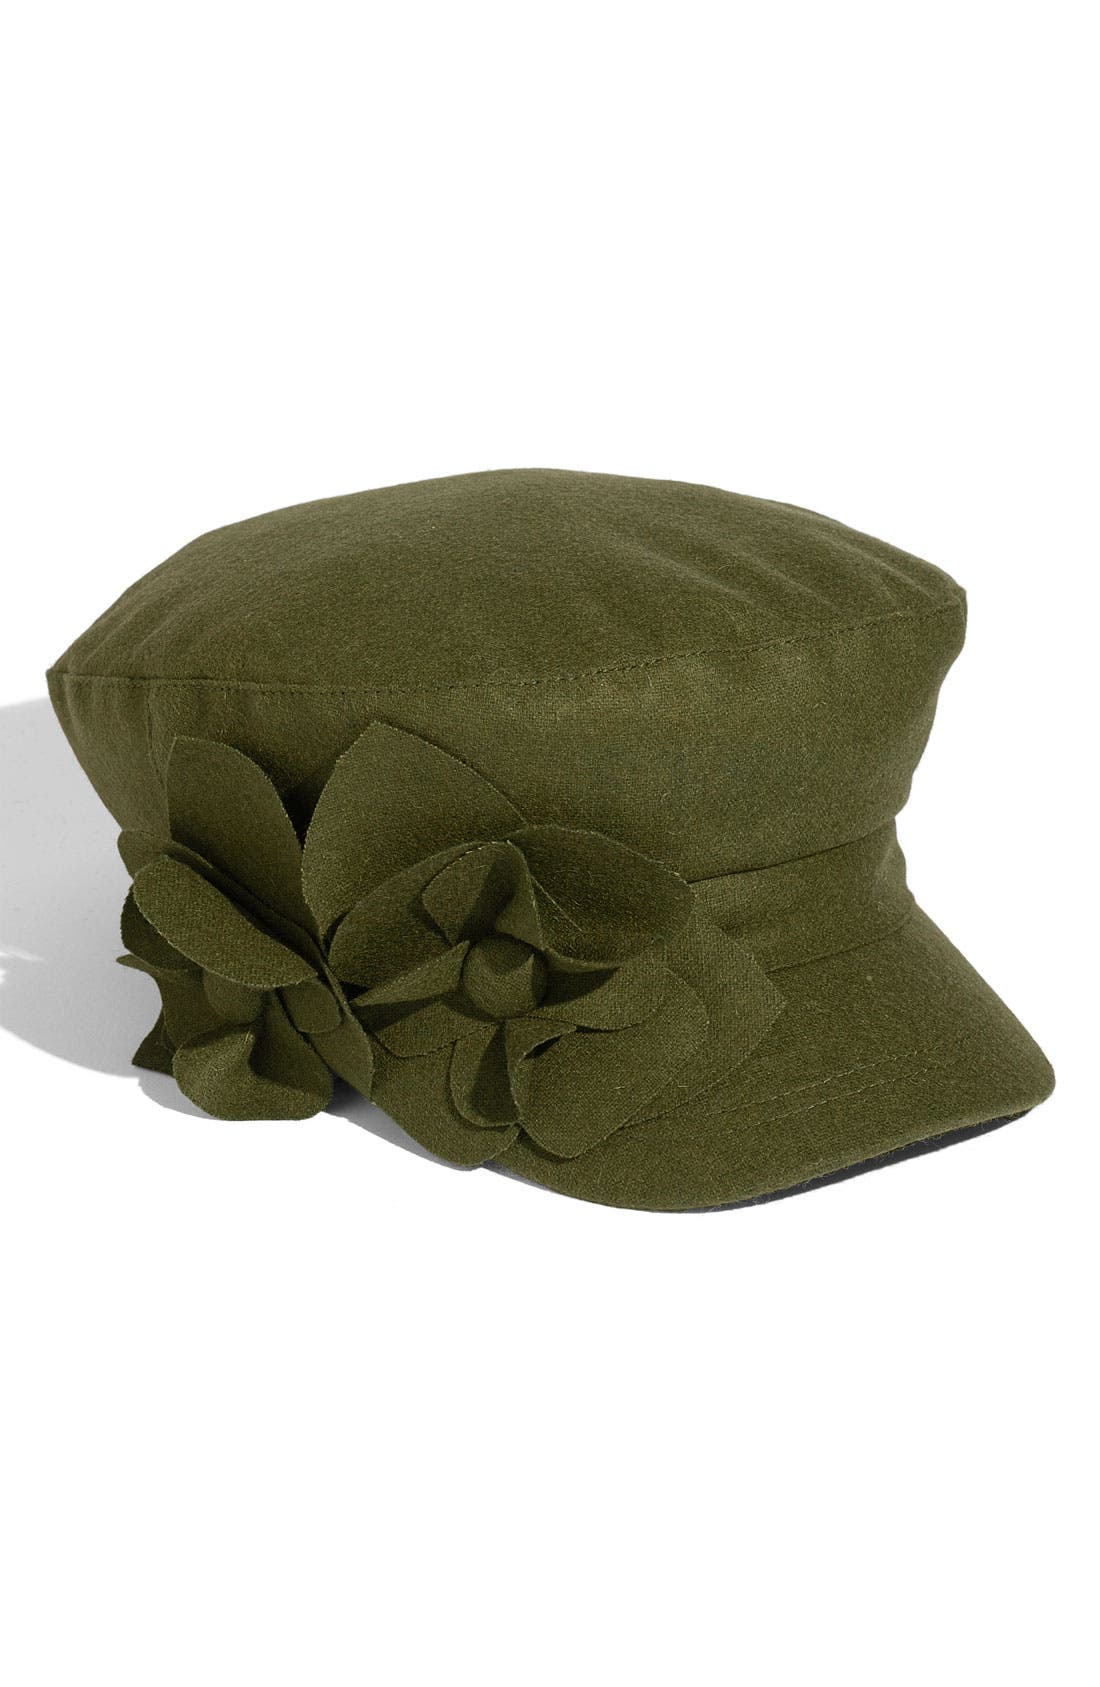 Alternate Image 1 Selected - August Hat 'Flower' Conductor Cap